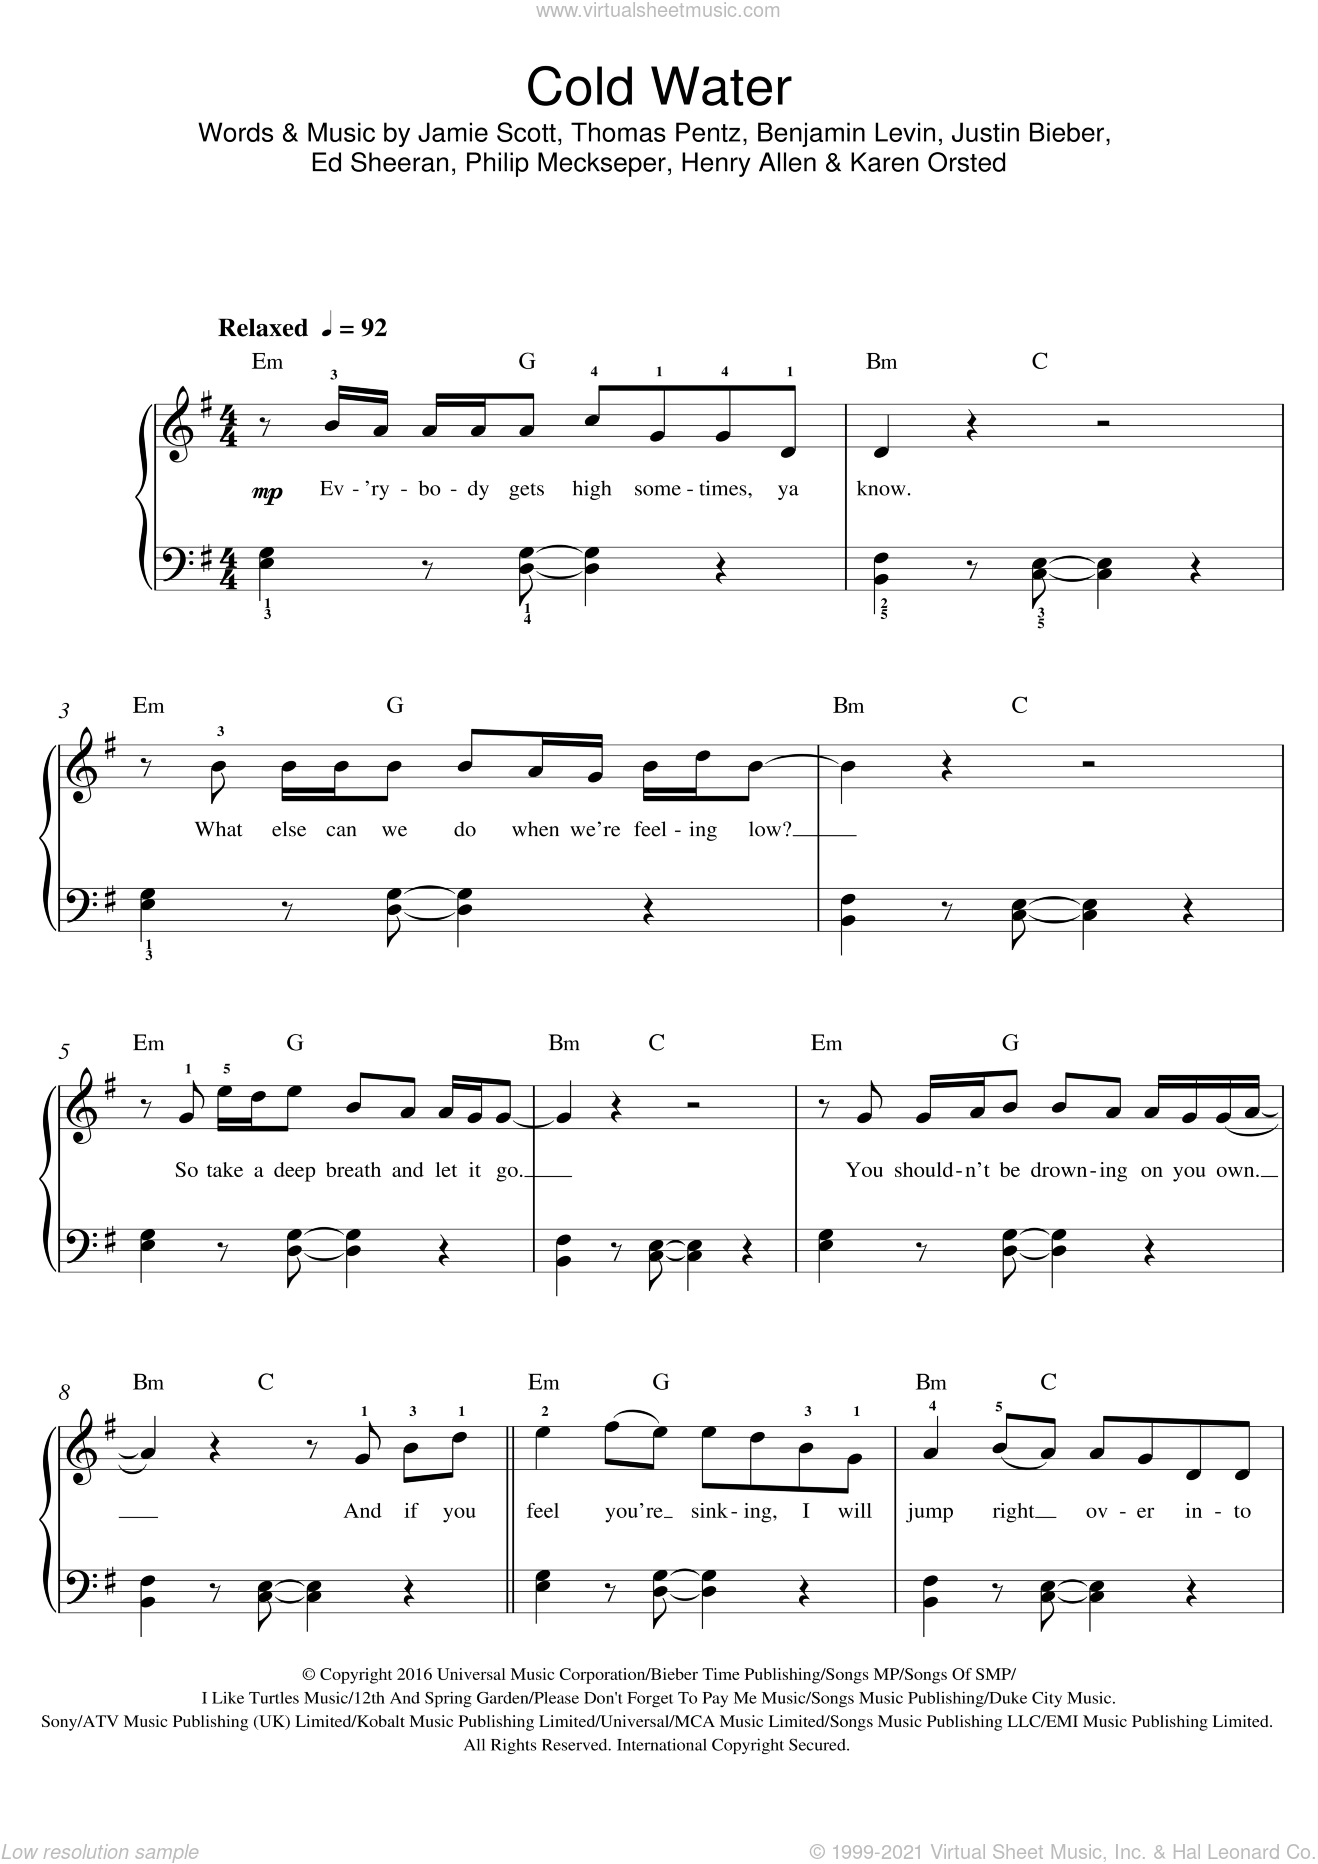 Cold Water (featuring Justin Bieber and MO) sheet music for voice, piano or guitar by Major Lazer, Major Lazer feat. Justin Bieber & MO, MO, Benjamin Levin, Ed Sheeran, Henry Allen, Jamie Scott, Justin Bieber, Karen Orsted, Philip Meckseper and Thomas Wesley Pentz, intermediate skill level